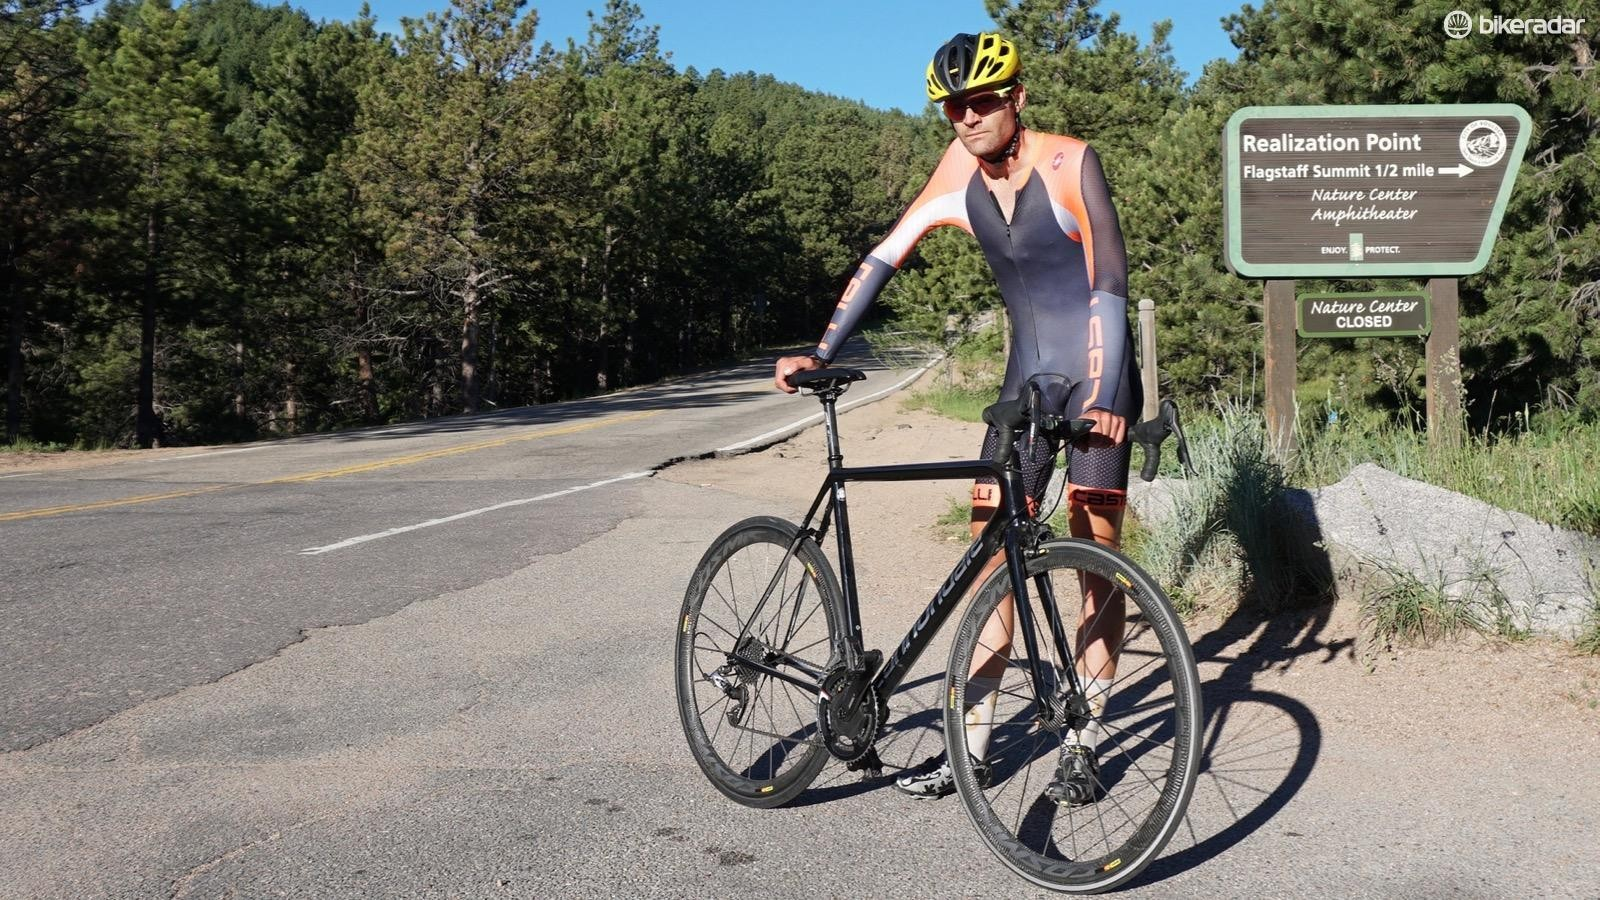 A man, his bike, and more than 940 Strava KOM crowns